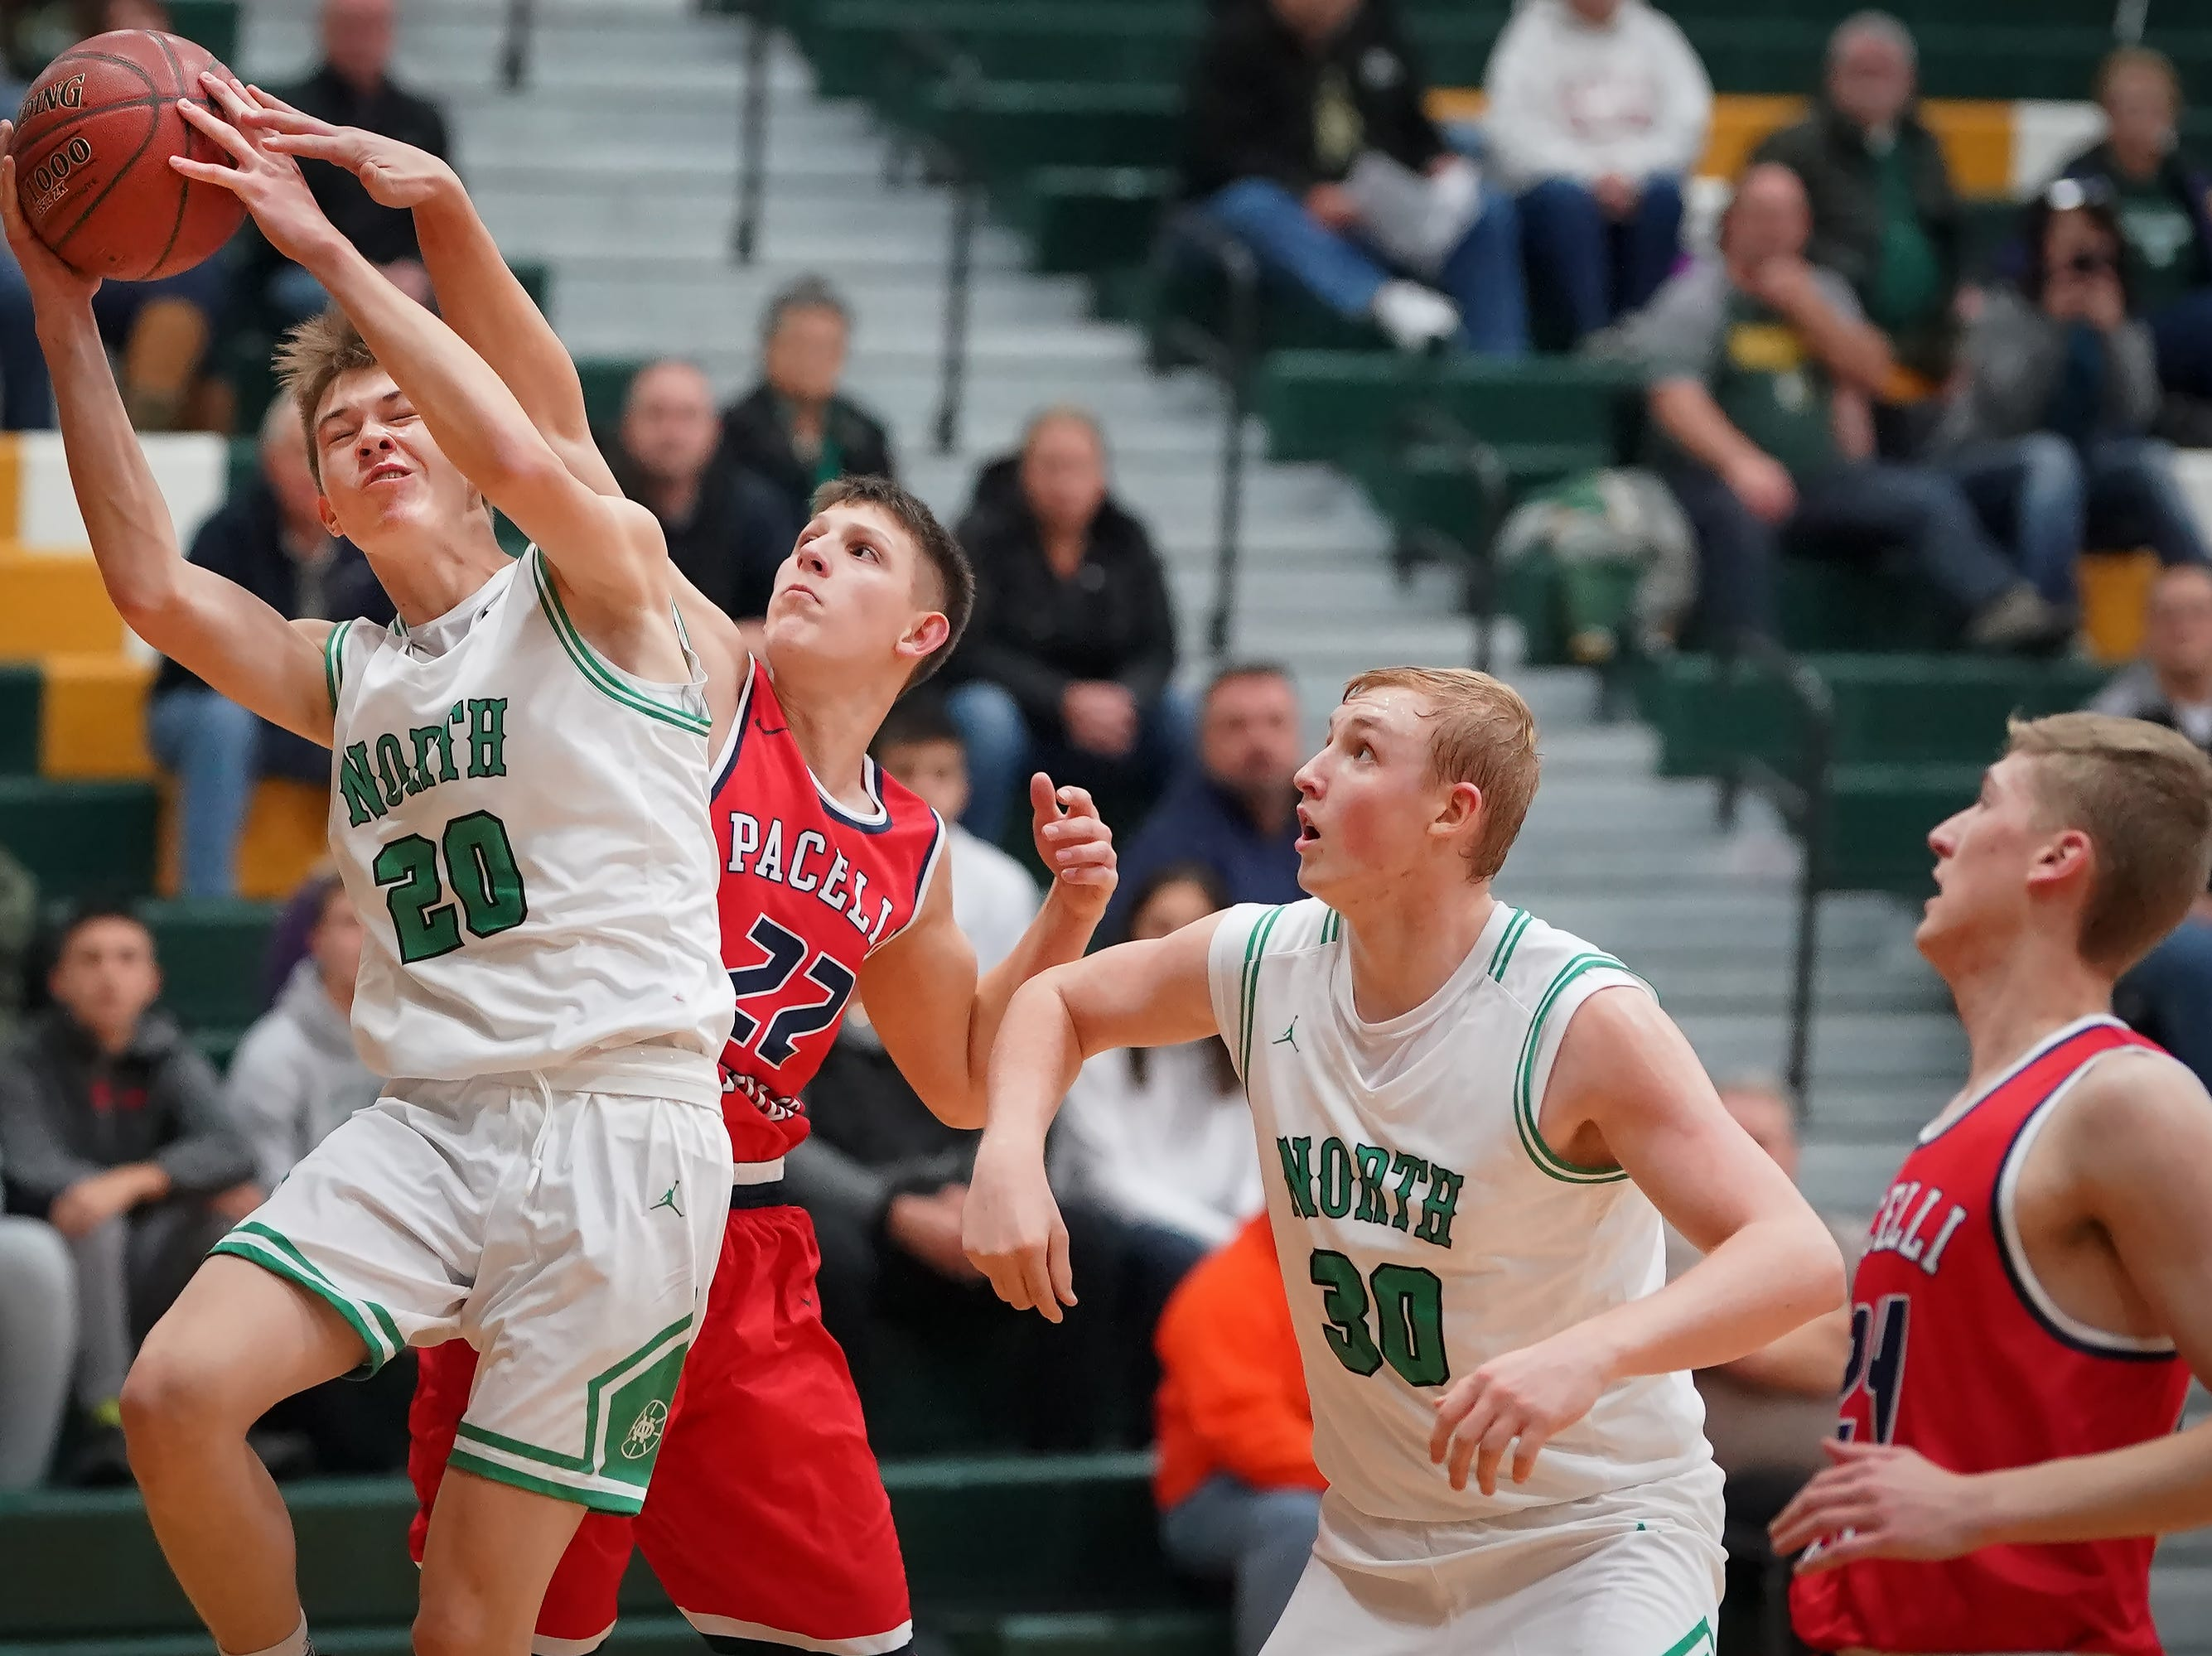 Brennon Colburn (20) of Oshkosh North pulls a rebound away from Elliot Parks (22) of Pacelli. The Oshkosh North Spartans hosted the Stevens Point Pacelli Catholic Cardinals in the Friday night game of the Fox River Brewing Thanksgiving Classic Tournament.